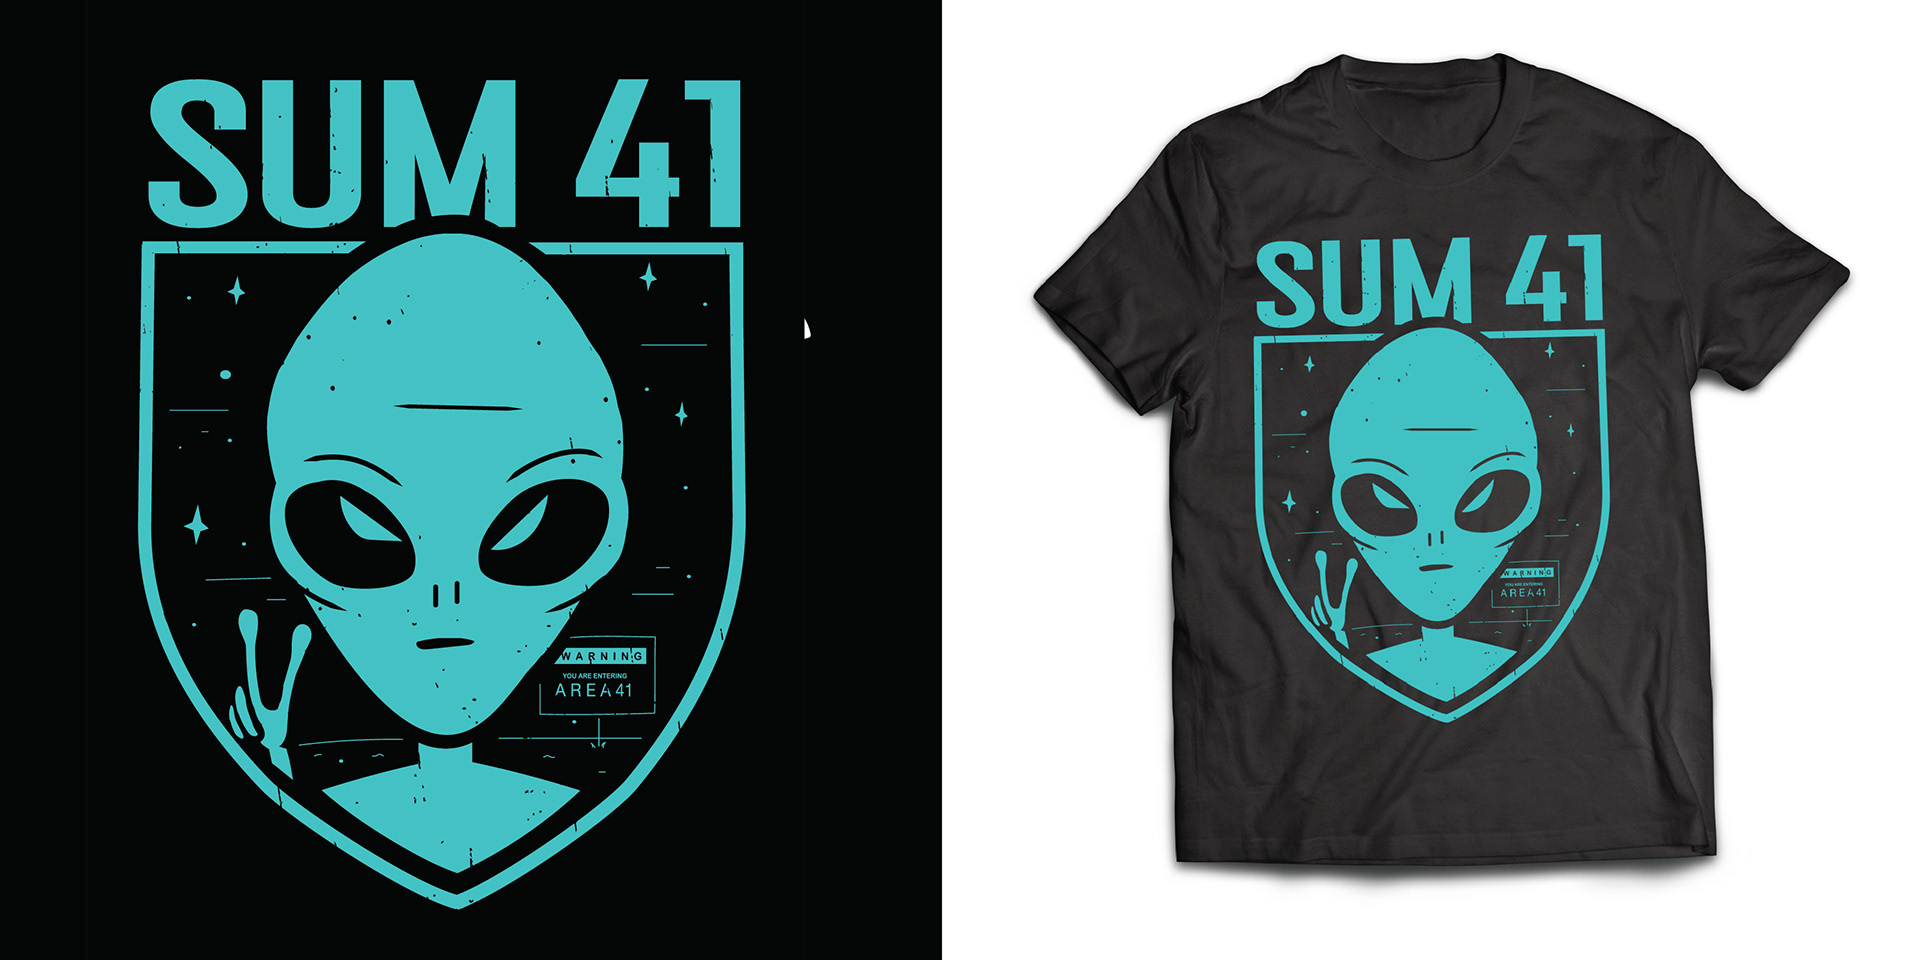 Merch designs for Sum 41